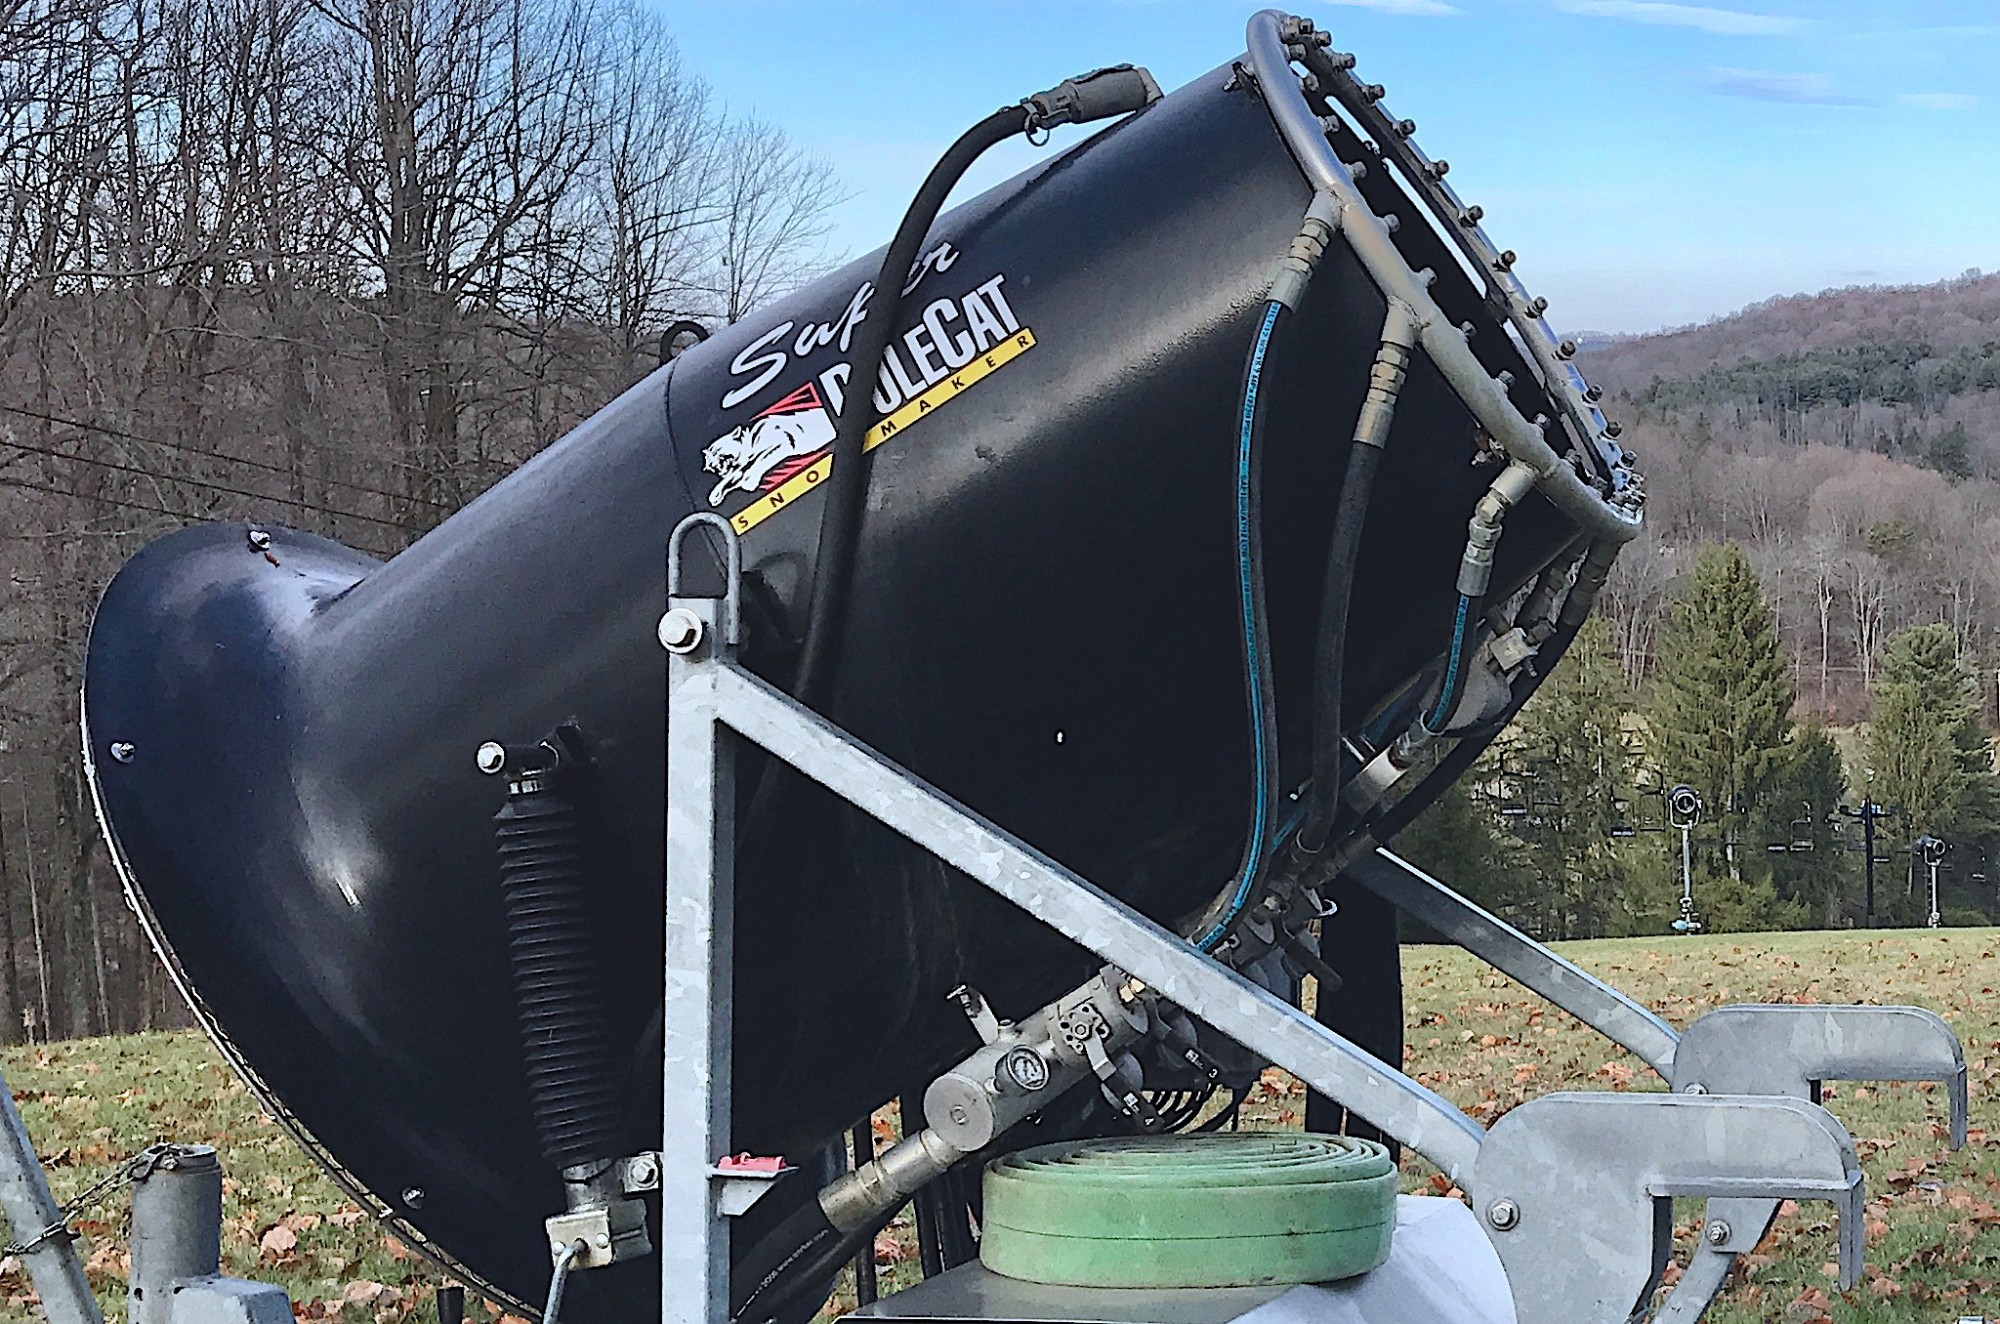 New Snow Guns at Snow Trails